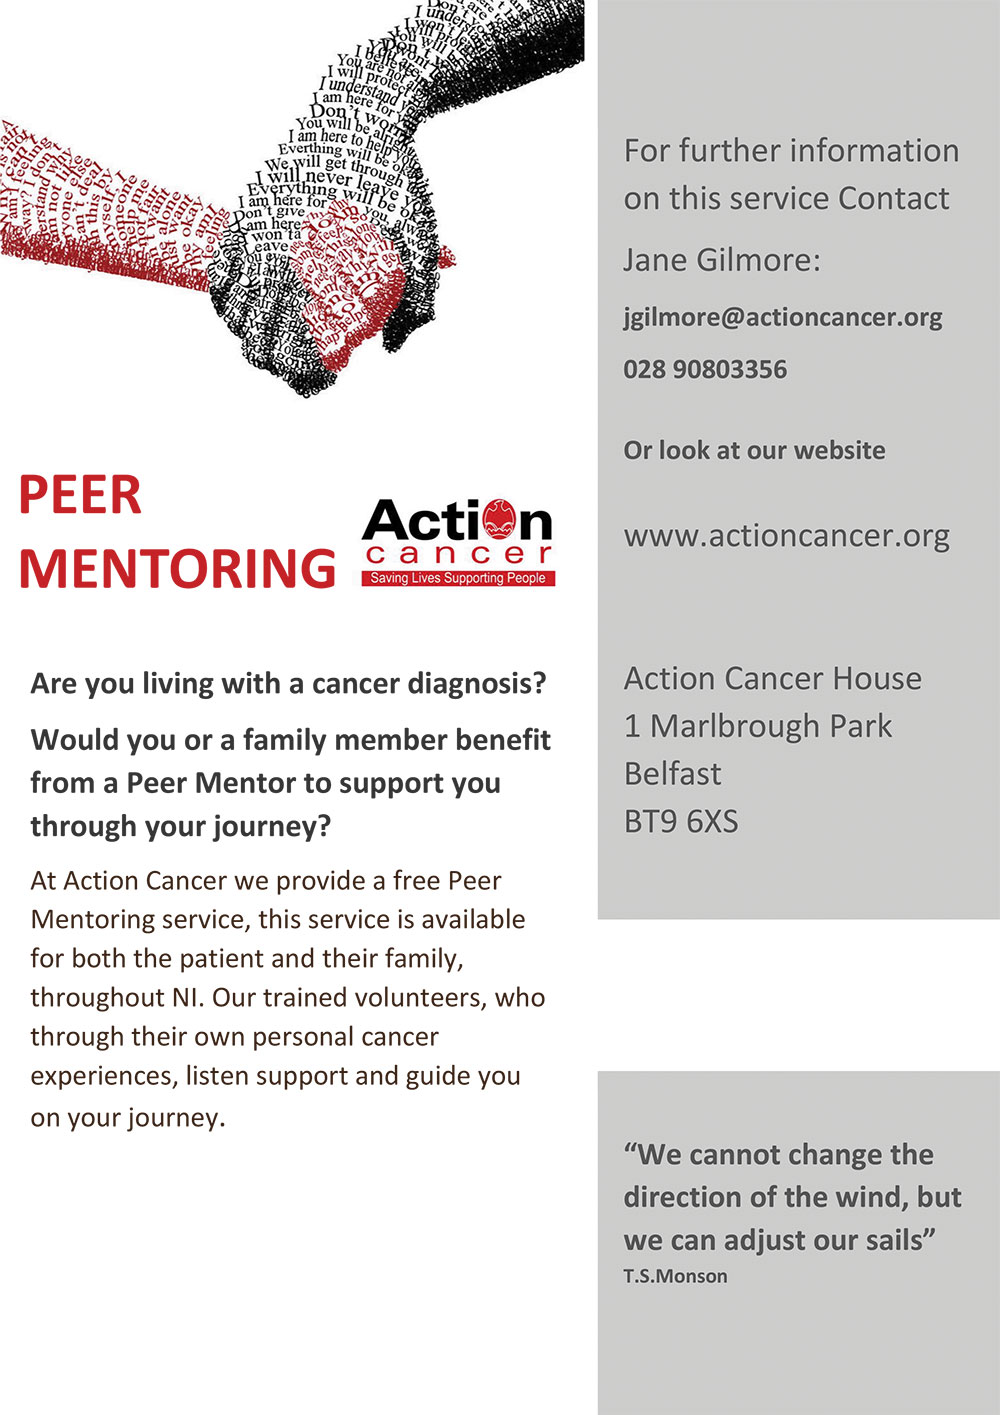 Action Cancer Peer Mentoring